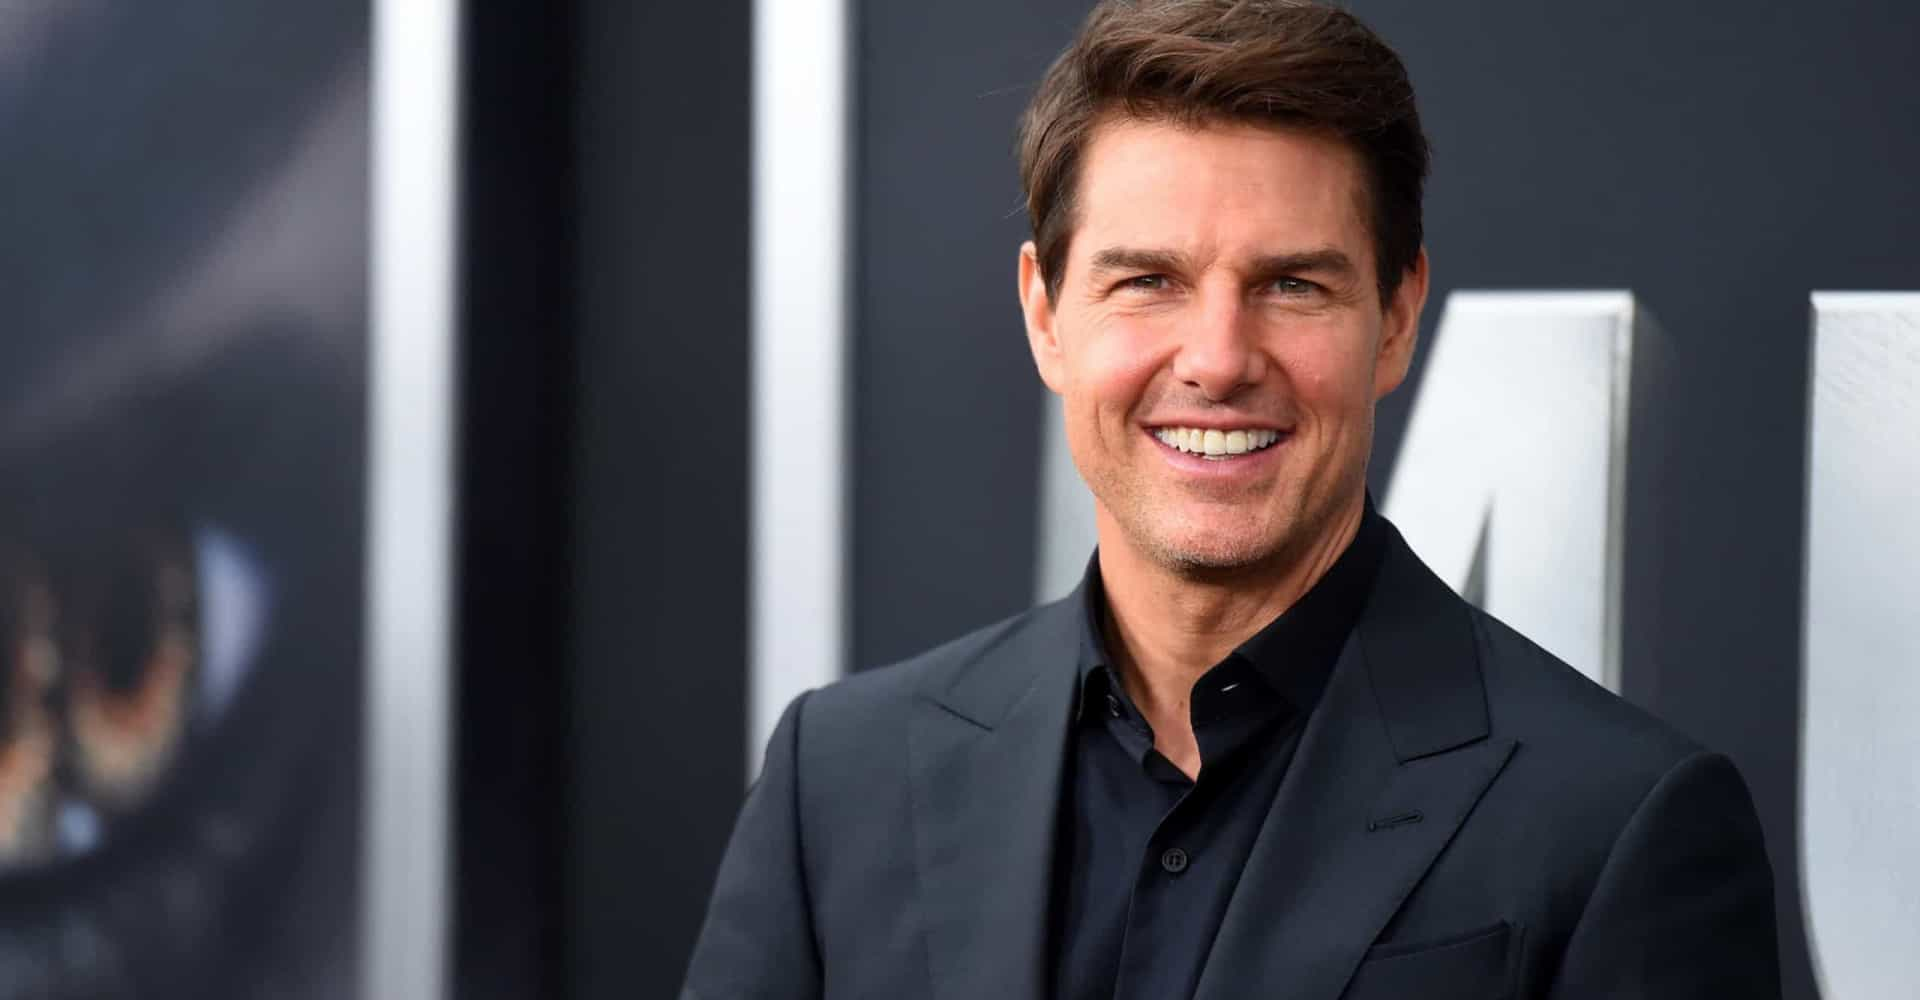 Tom Cruise turns 55: take a look at his career, marriages and other curious facts about the star